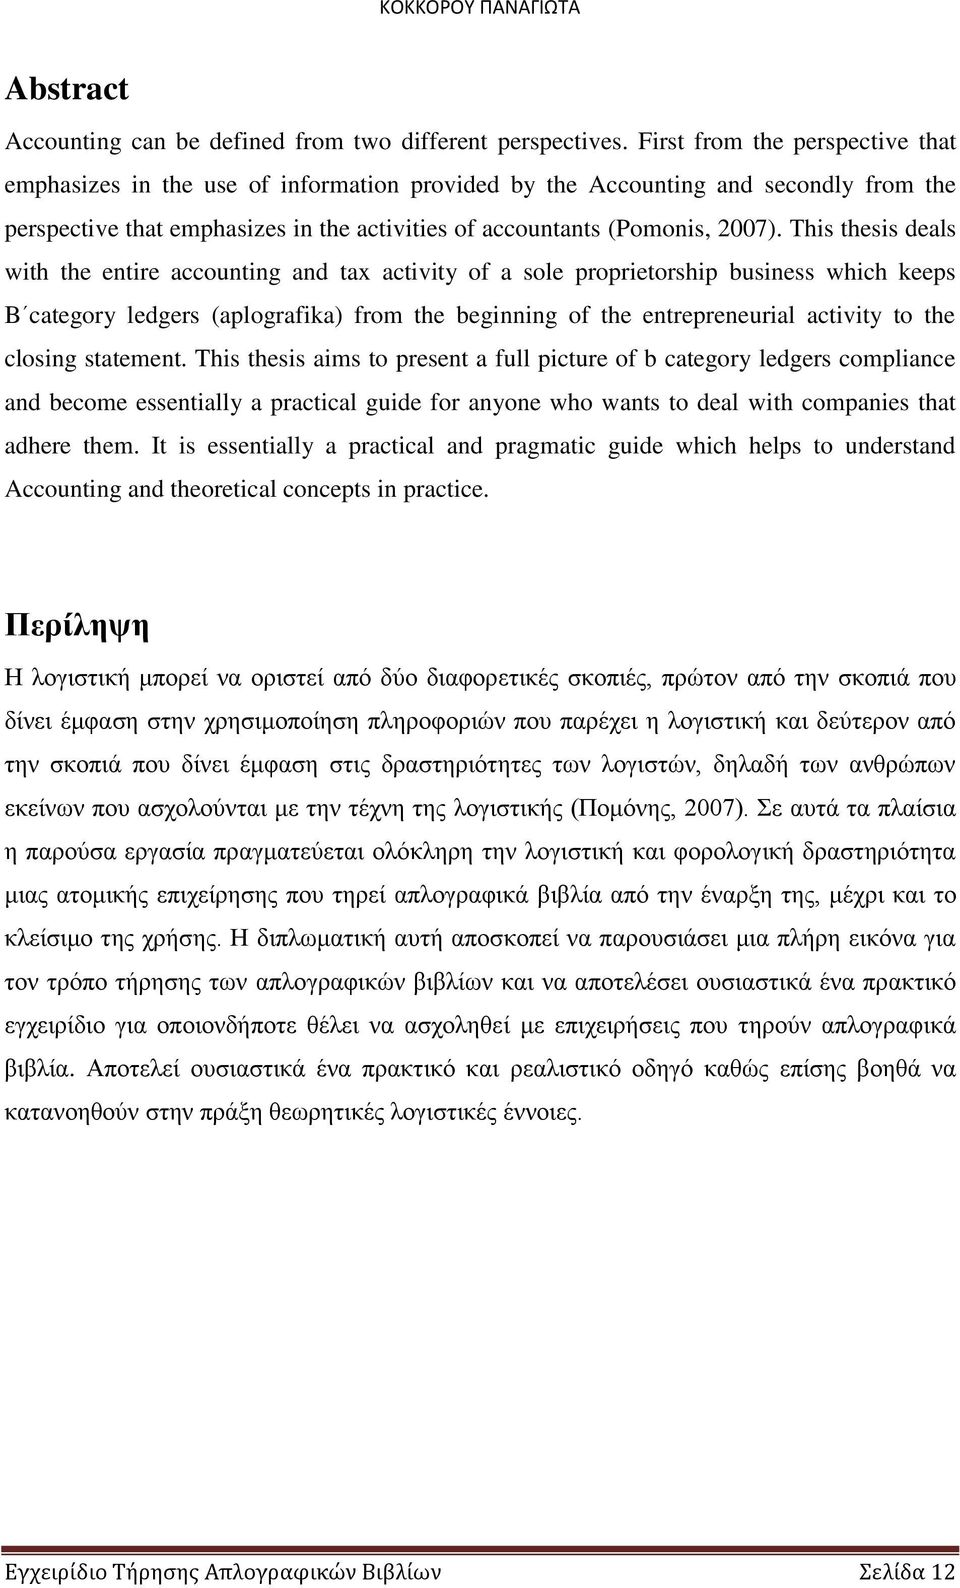 Τhis thesis deals with the entire accounting and tax activity of a sole proprietorship business which keeps B category ledgers (aplografika) from the beginning of the entrepreneurial activity to the